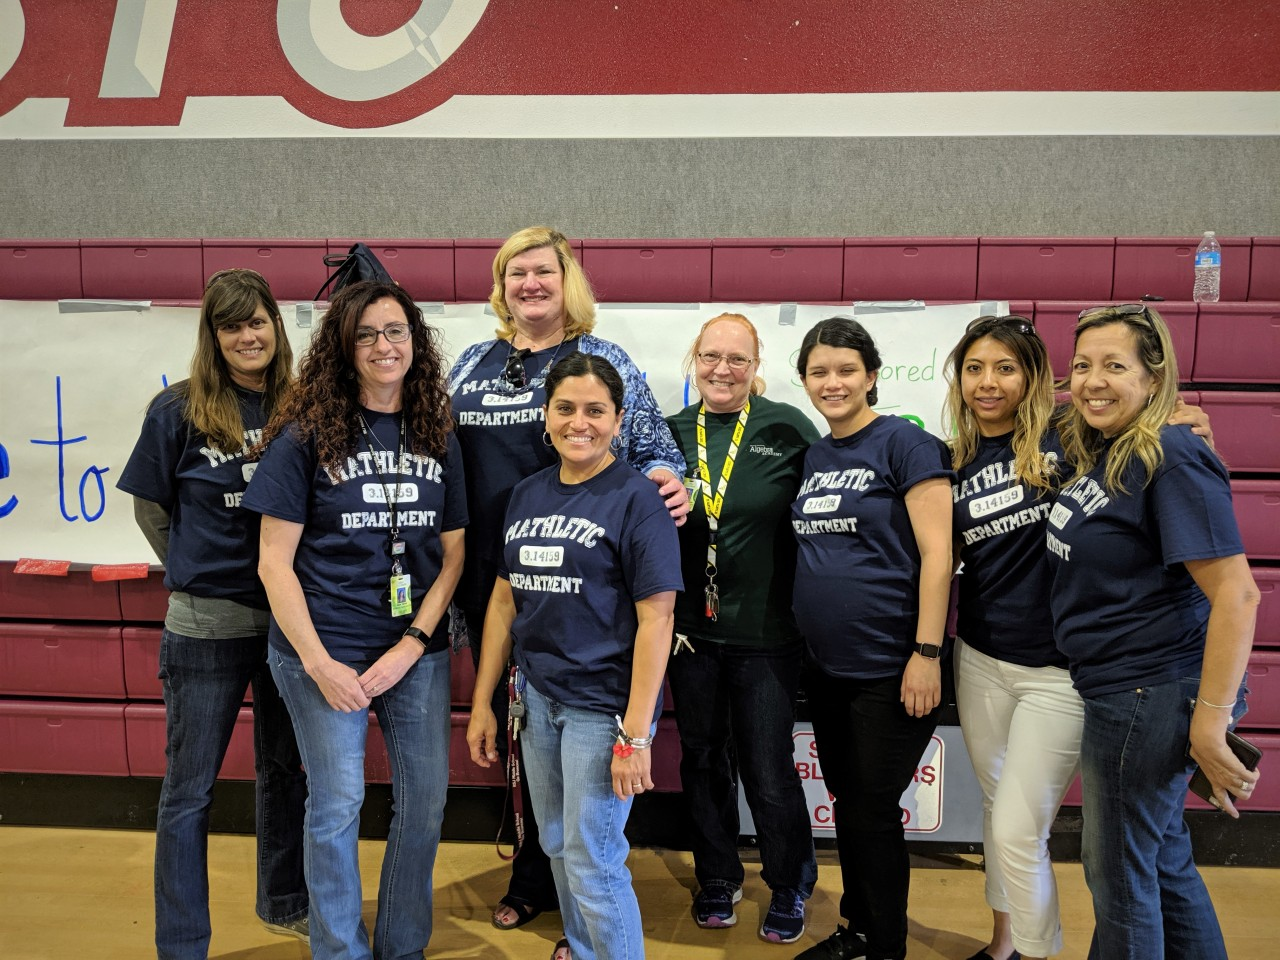 Debbi Parcell (second from left) explained how putting on this event was a team effort between the math department, Principal Vickie Smith and students involved.